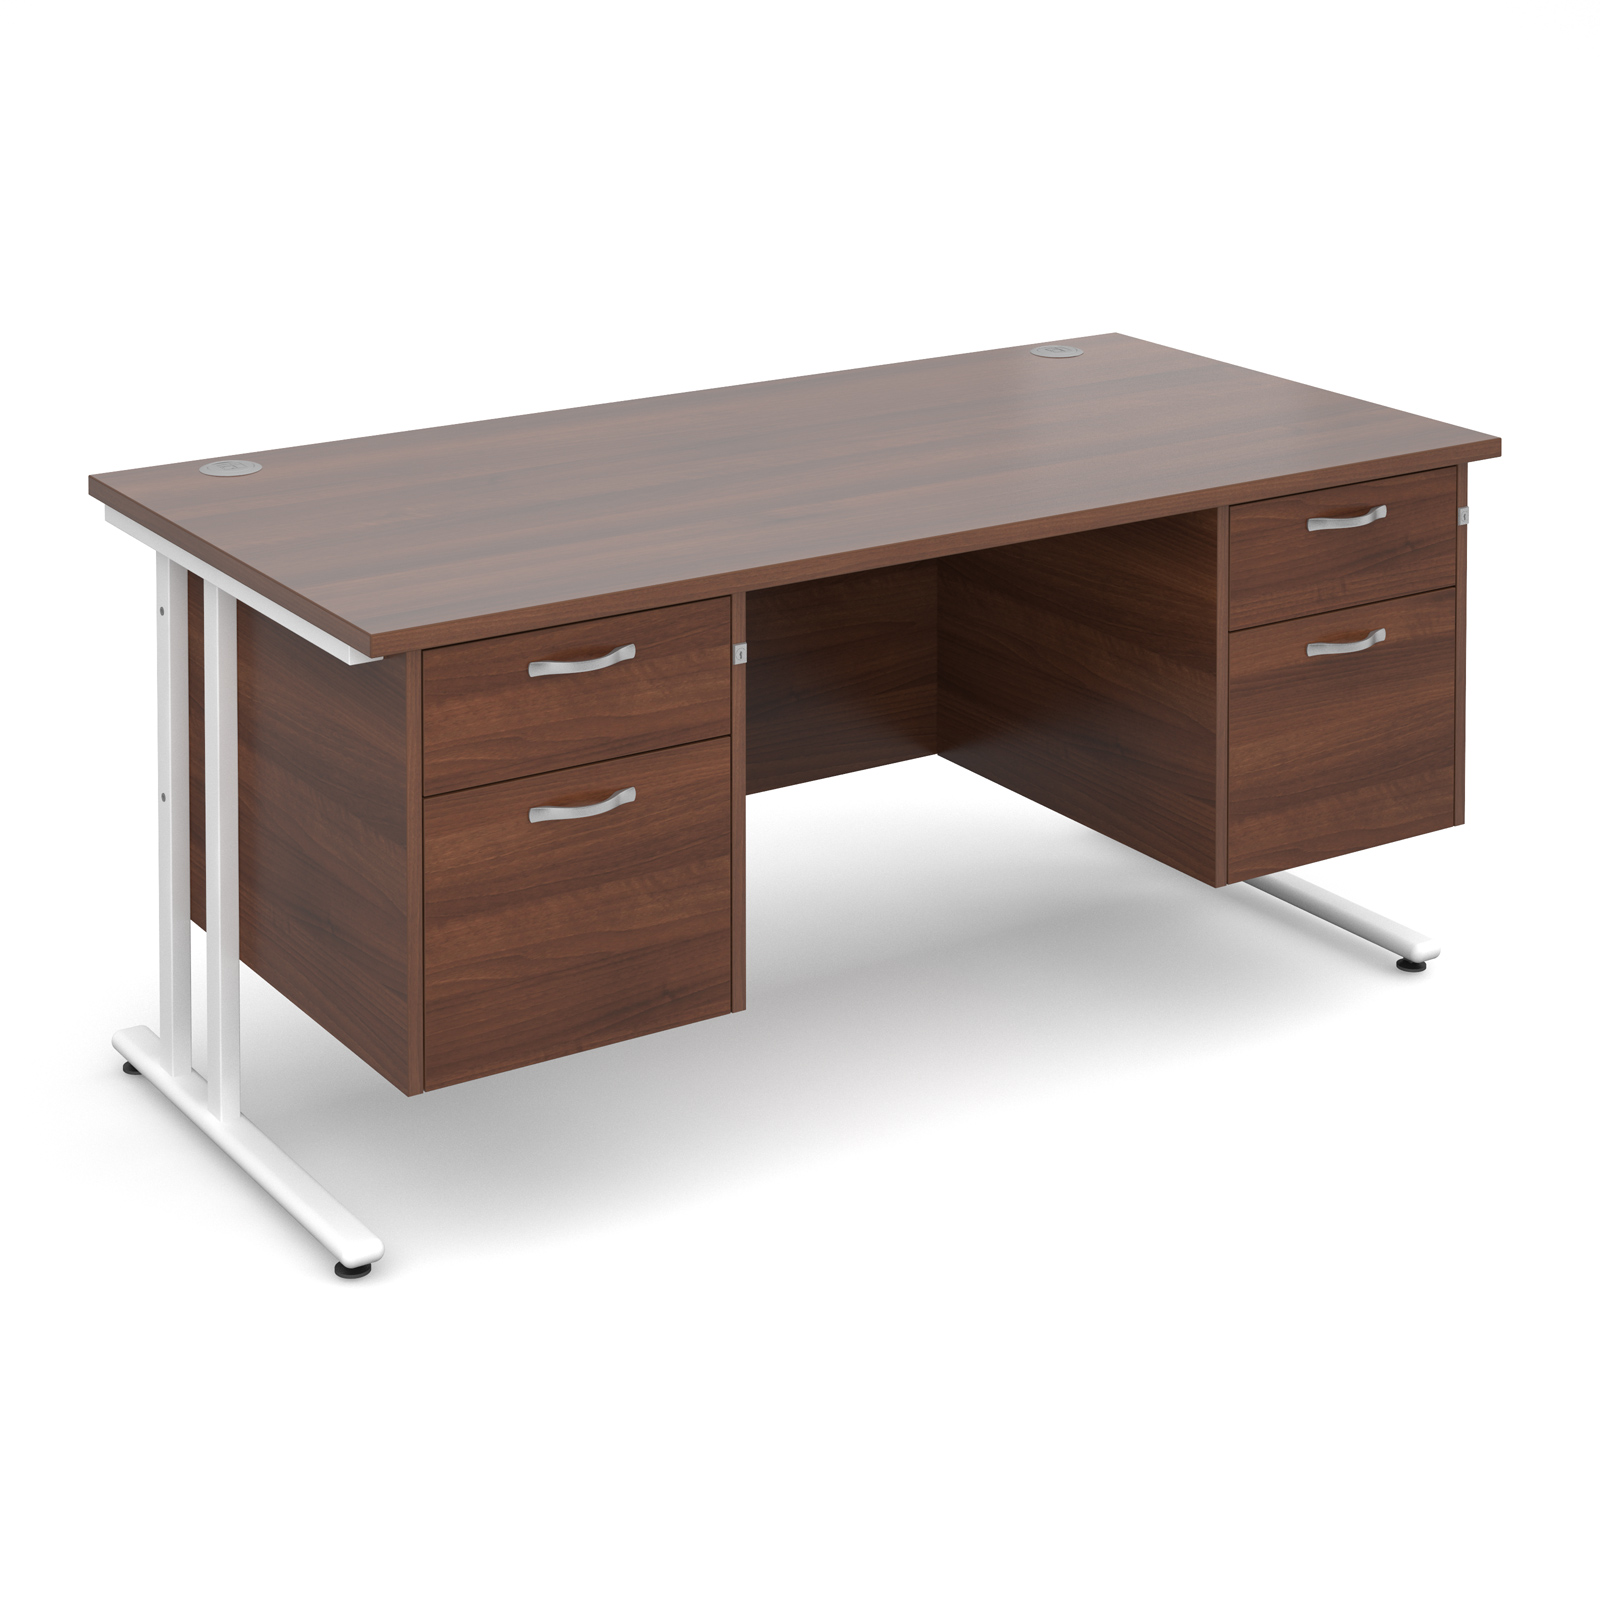 Dams Maestro 25 WL Walnut Desk | Straight Double Pedestal